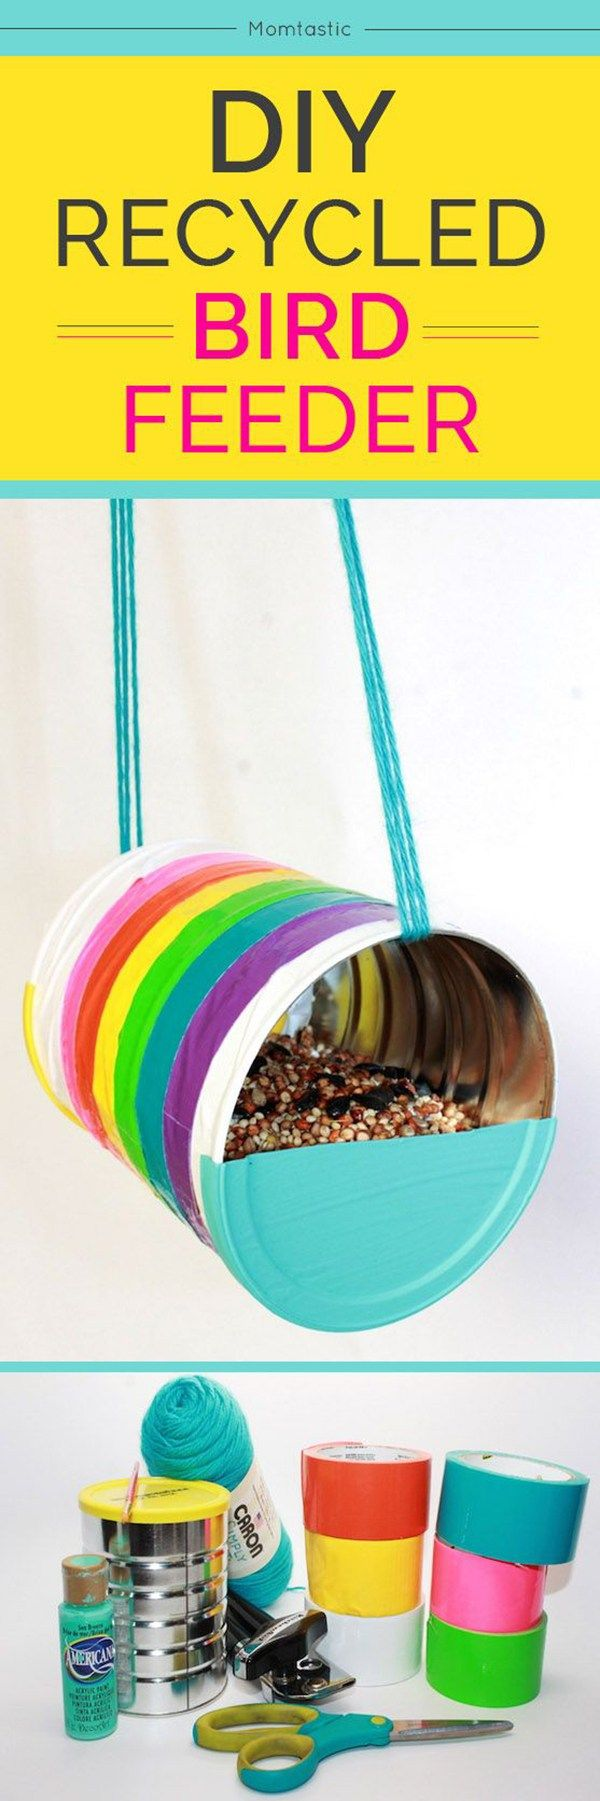 DIY Duct tape bird feeder - click through to see 10 Super Simple DIY Bird & Butterfly Feeders For Spring Time!